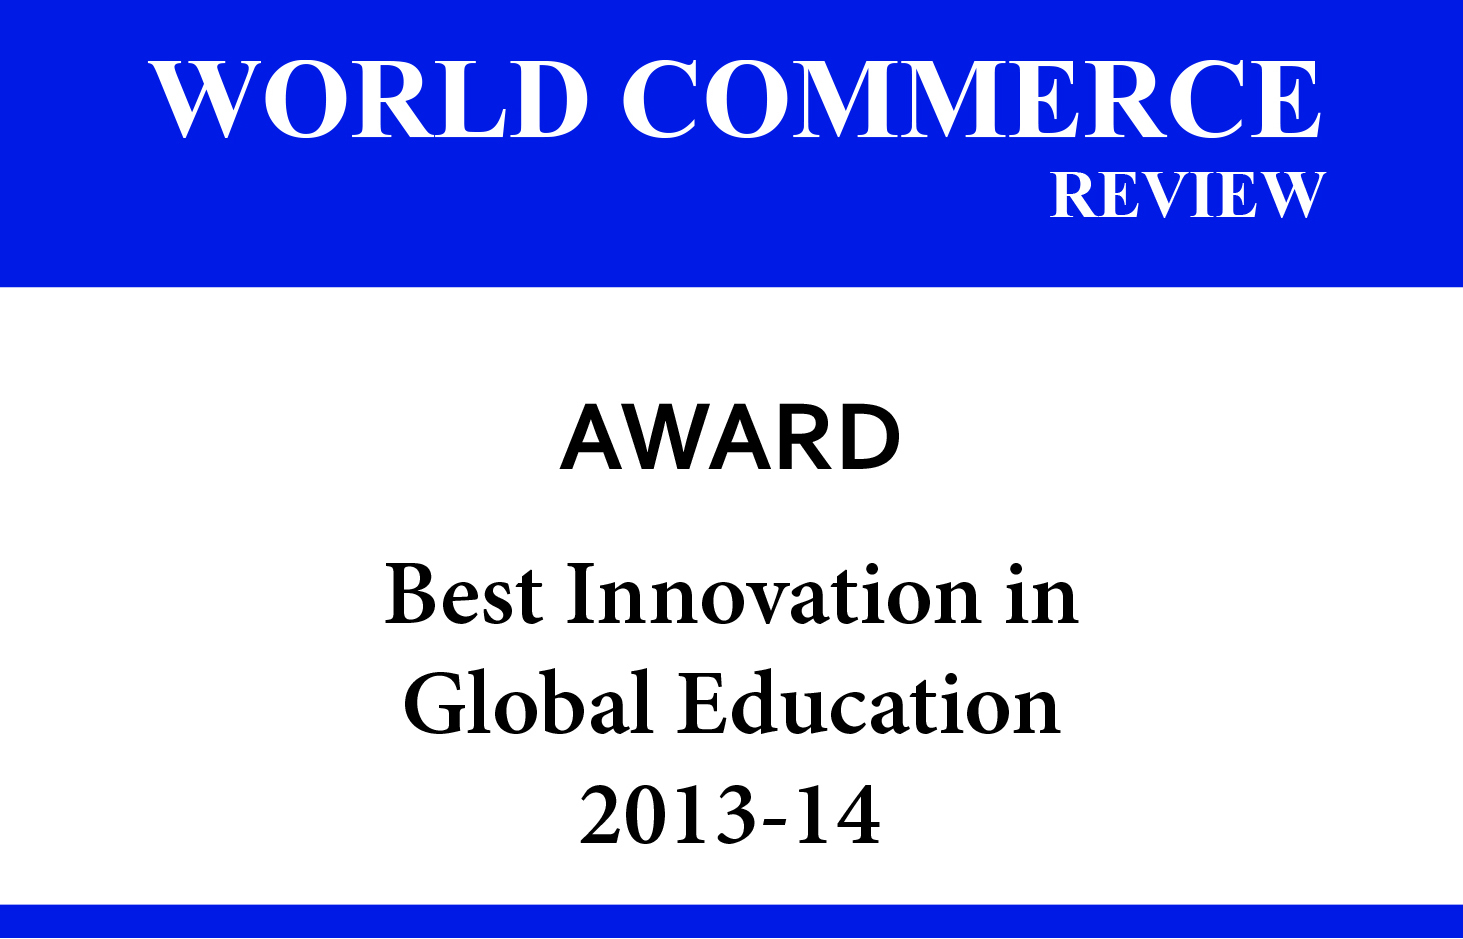 World Commerce Review Award - University of Wisconsin - Whitewater | Online MBA - Wisconsin, USA